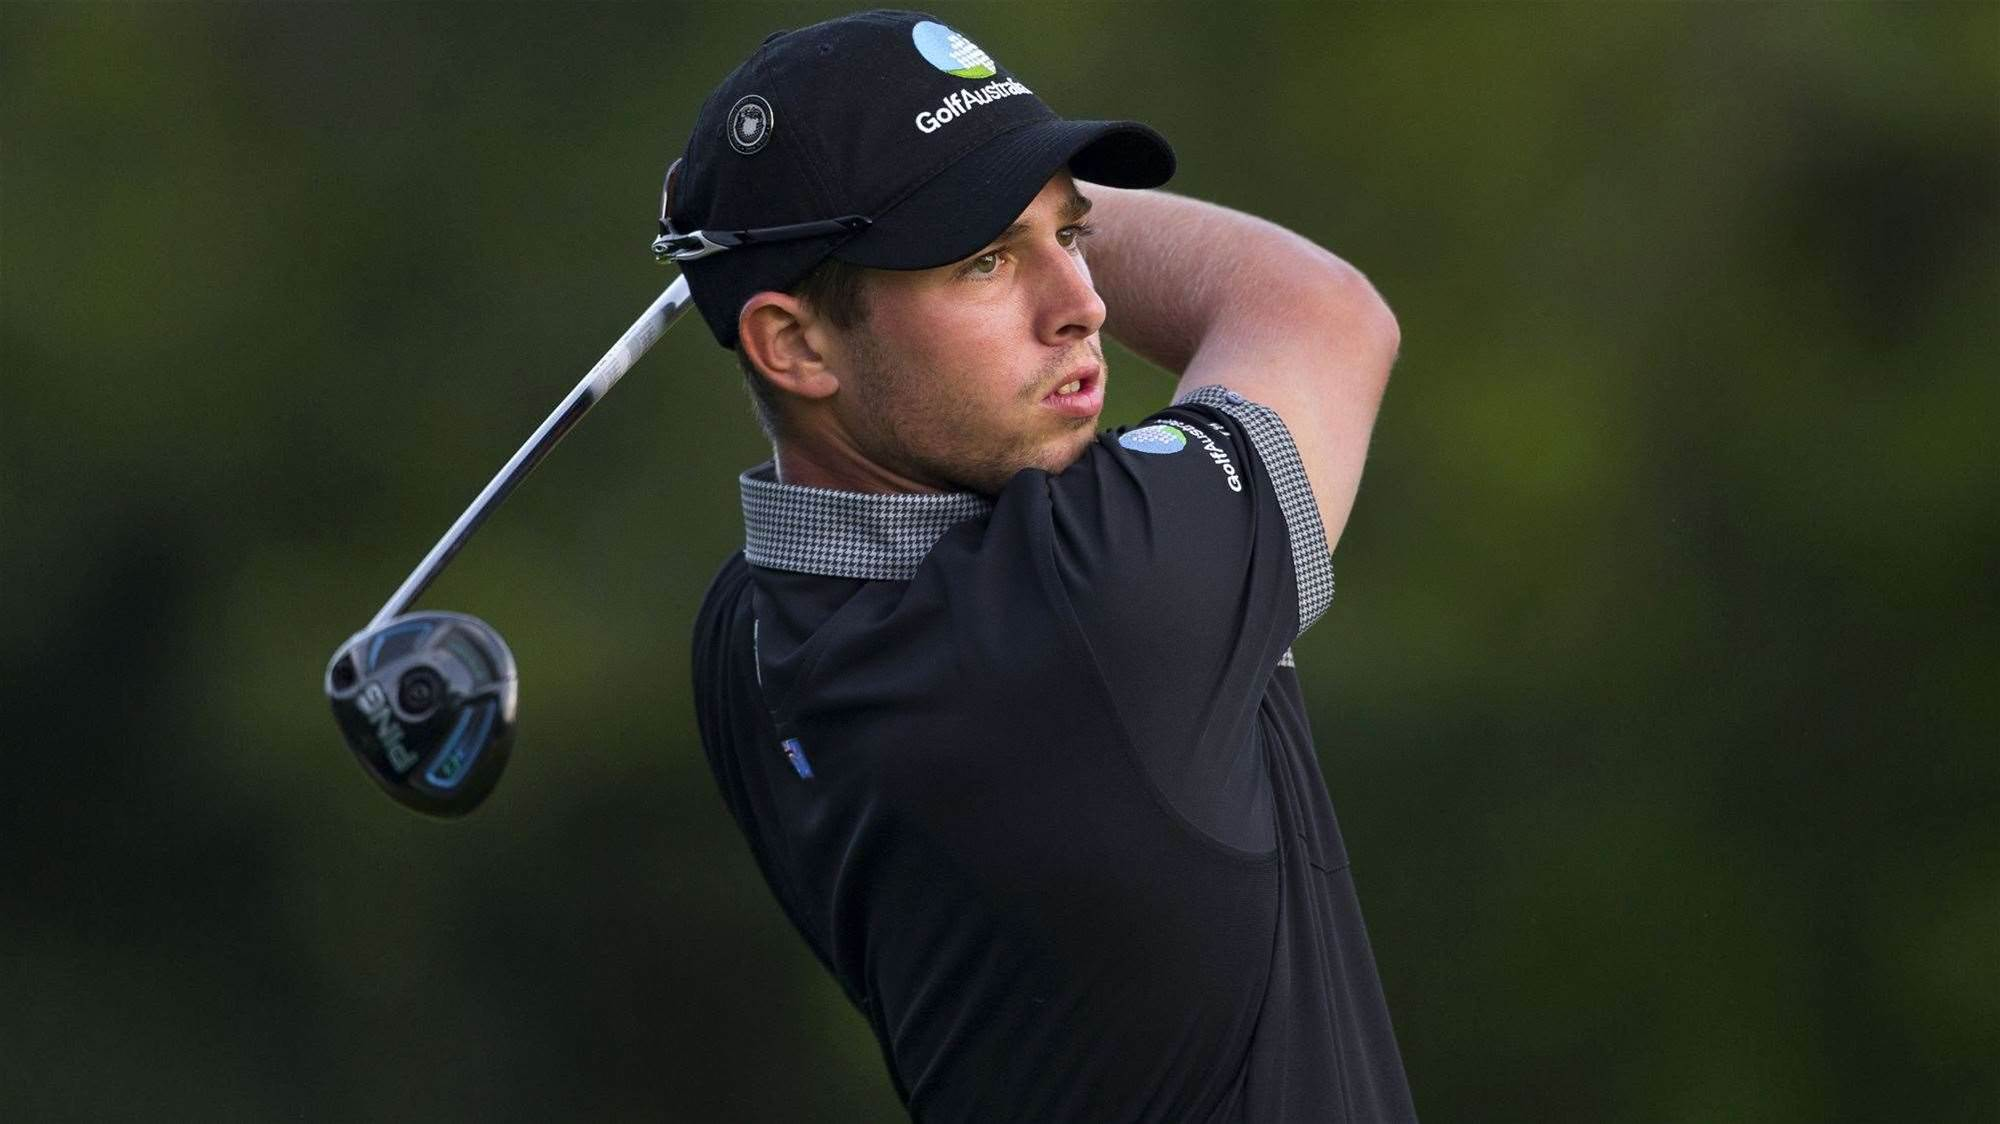 WATC: Aussies surge to big lead in Mexico